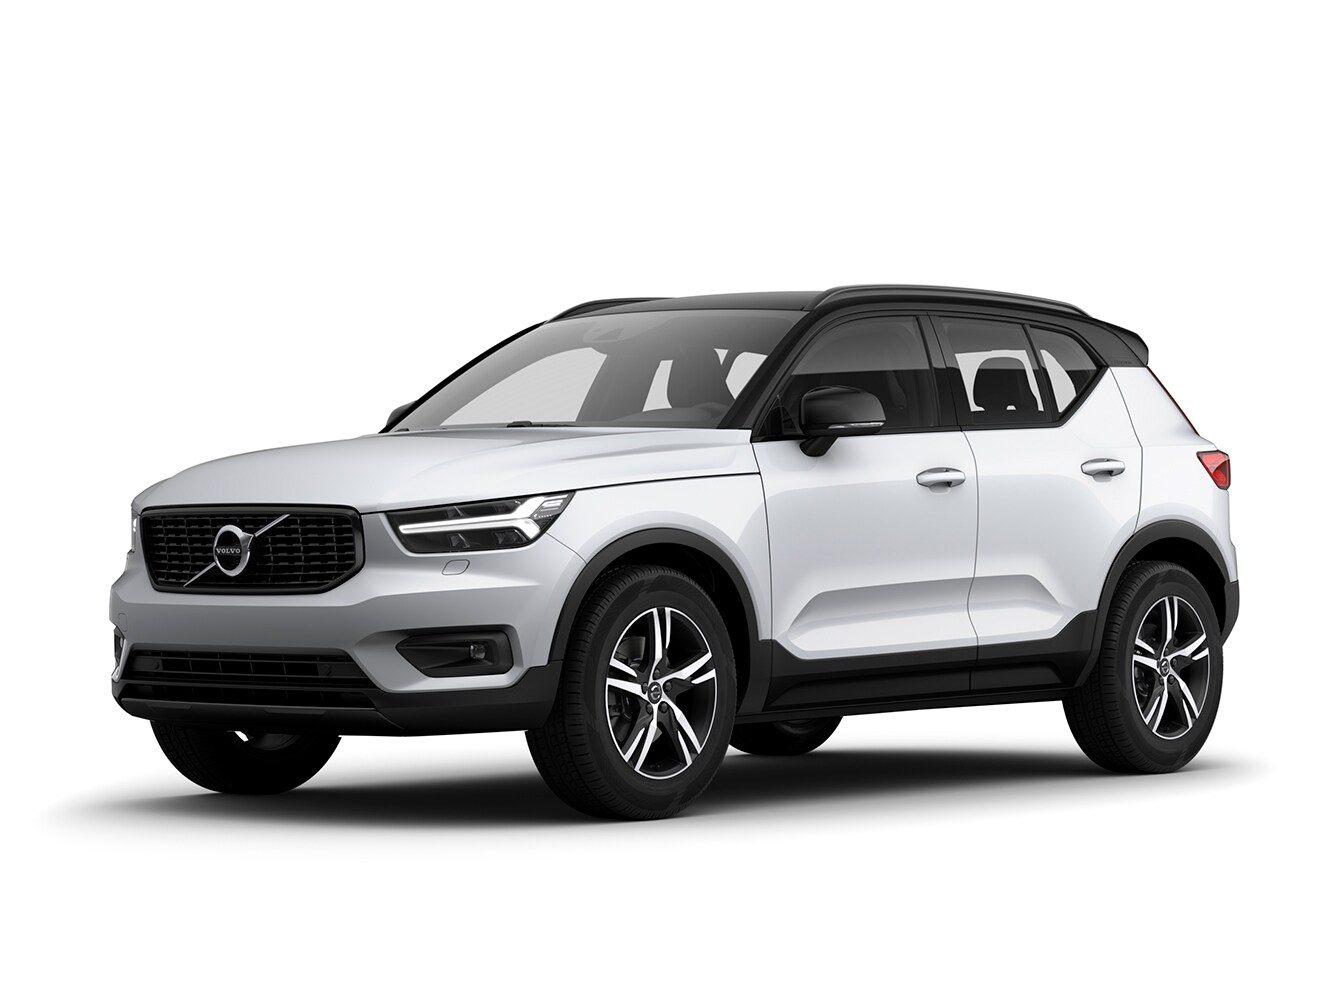 The Volvo XC40 R-Design trim